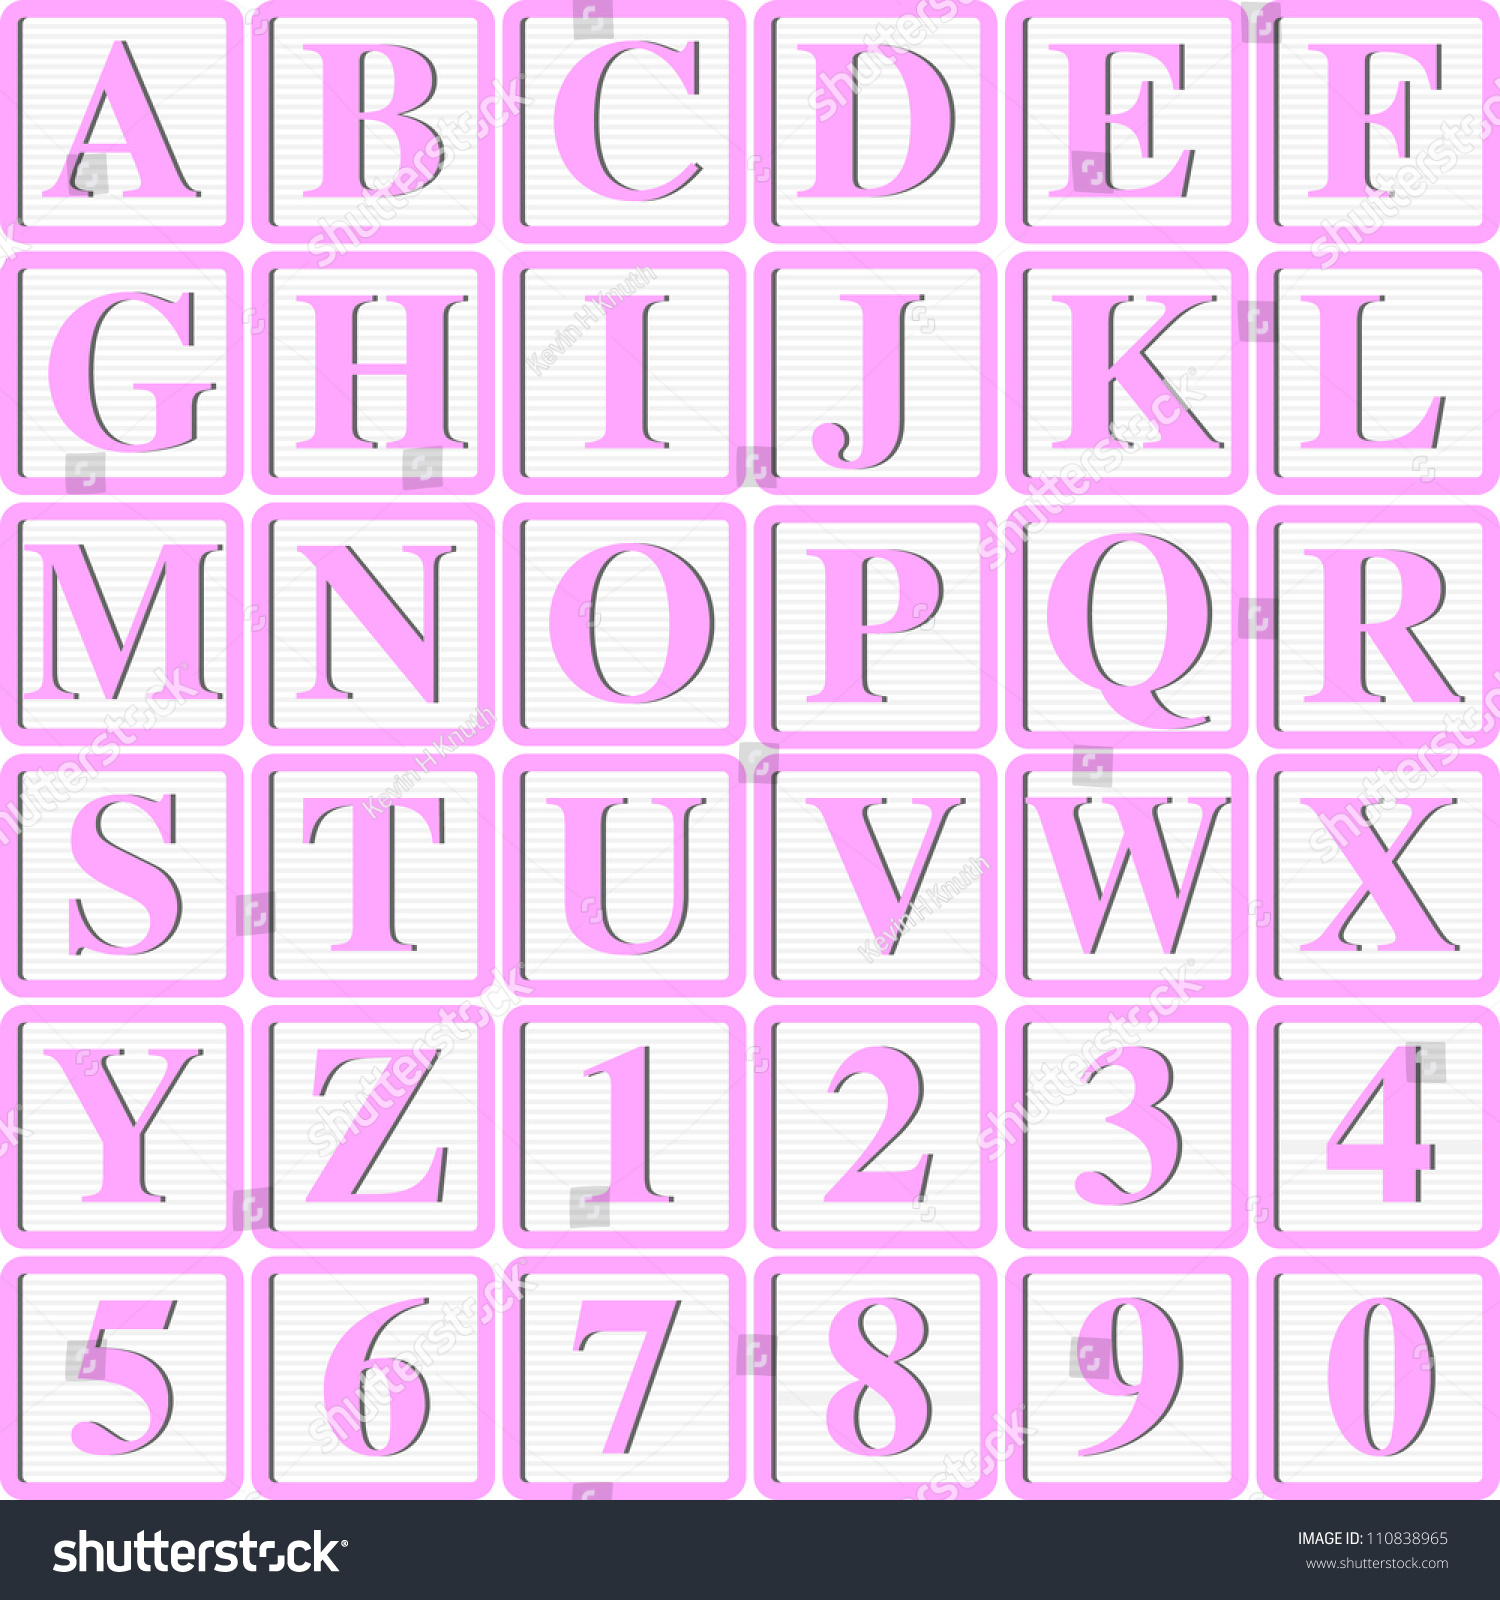 baby girl pink block letters for invitations cards or announcements